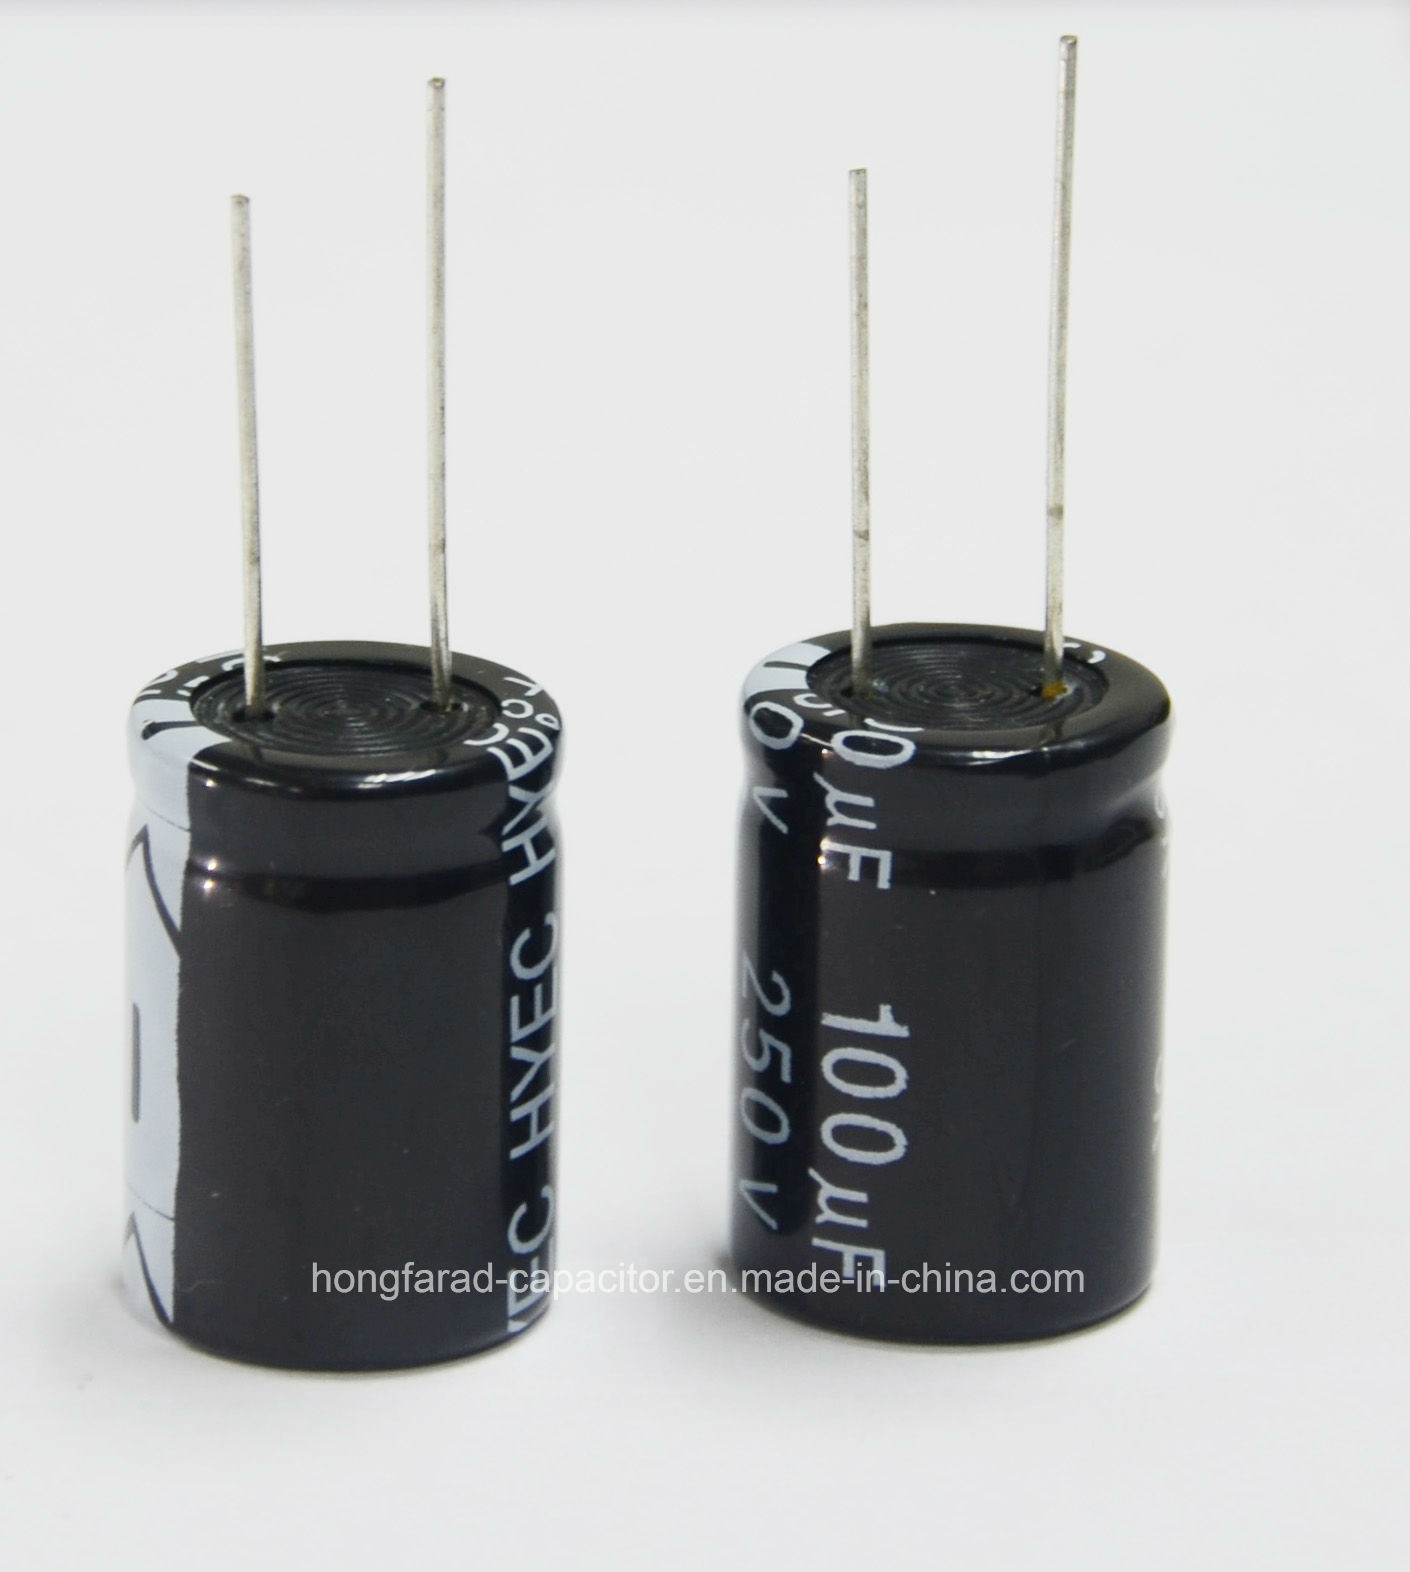 High Quality Ls Aluminum Electrolytic Capacitor for Radio